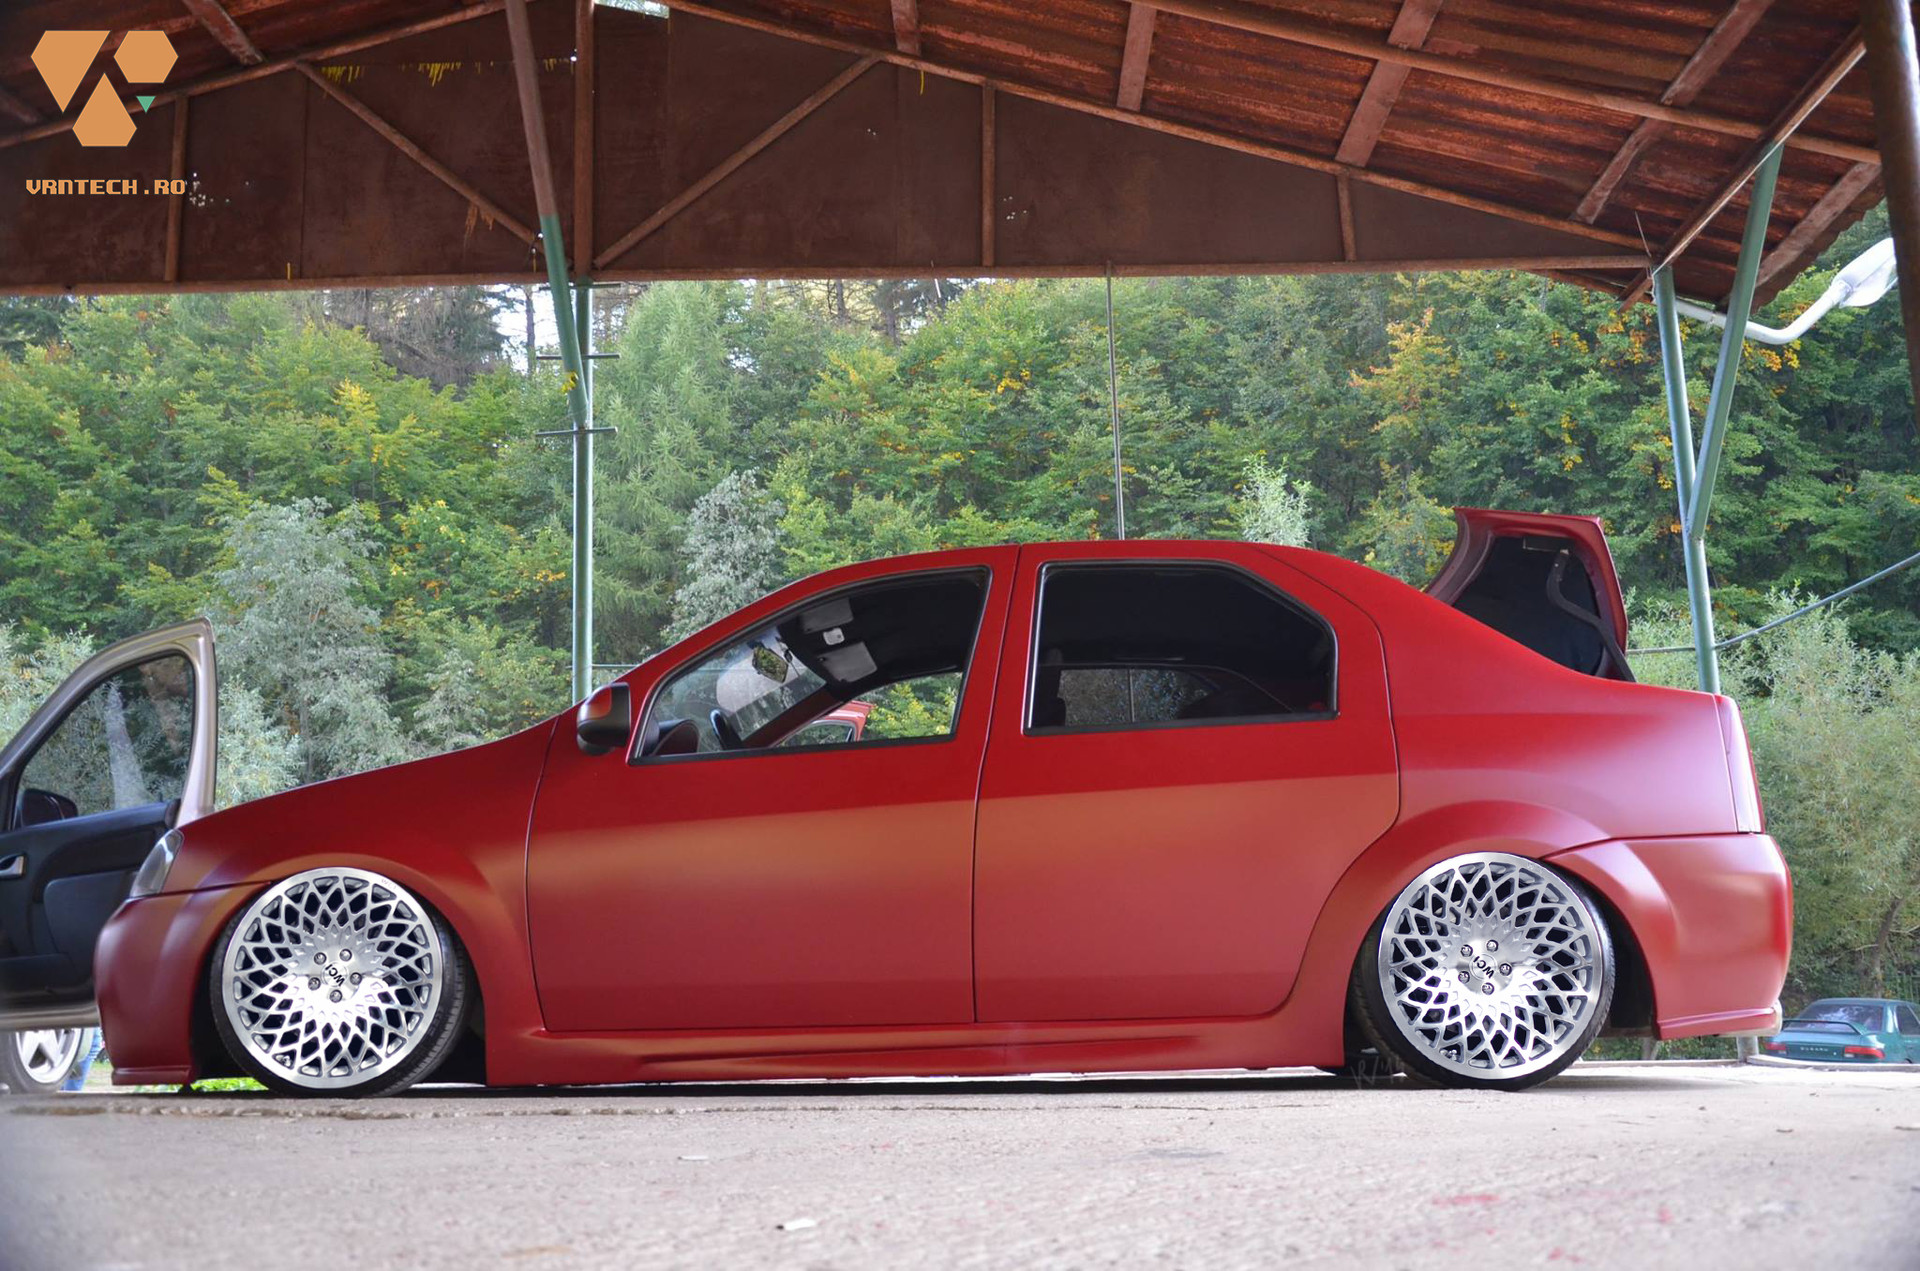 Side view with the WCI rims.